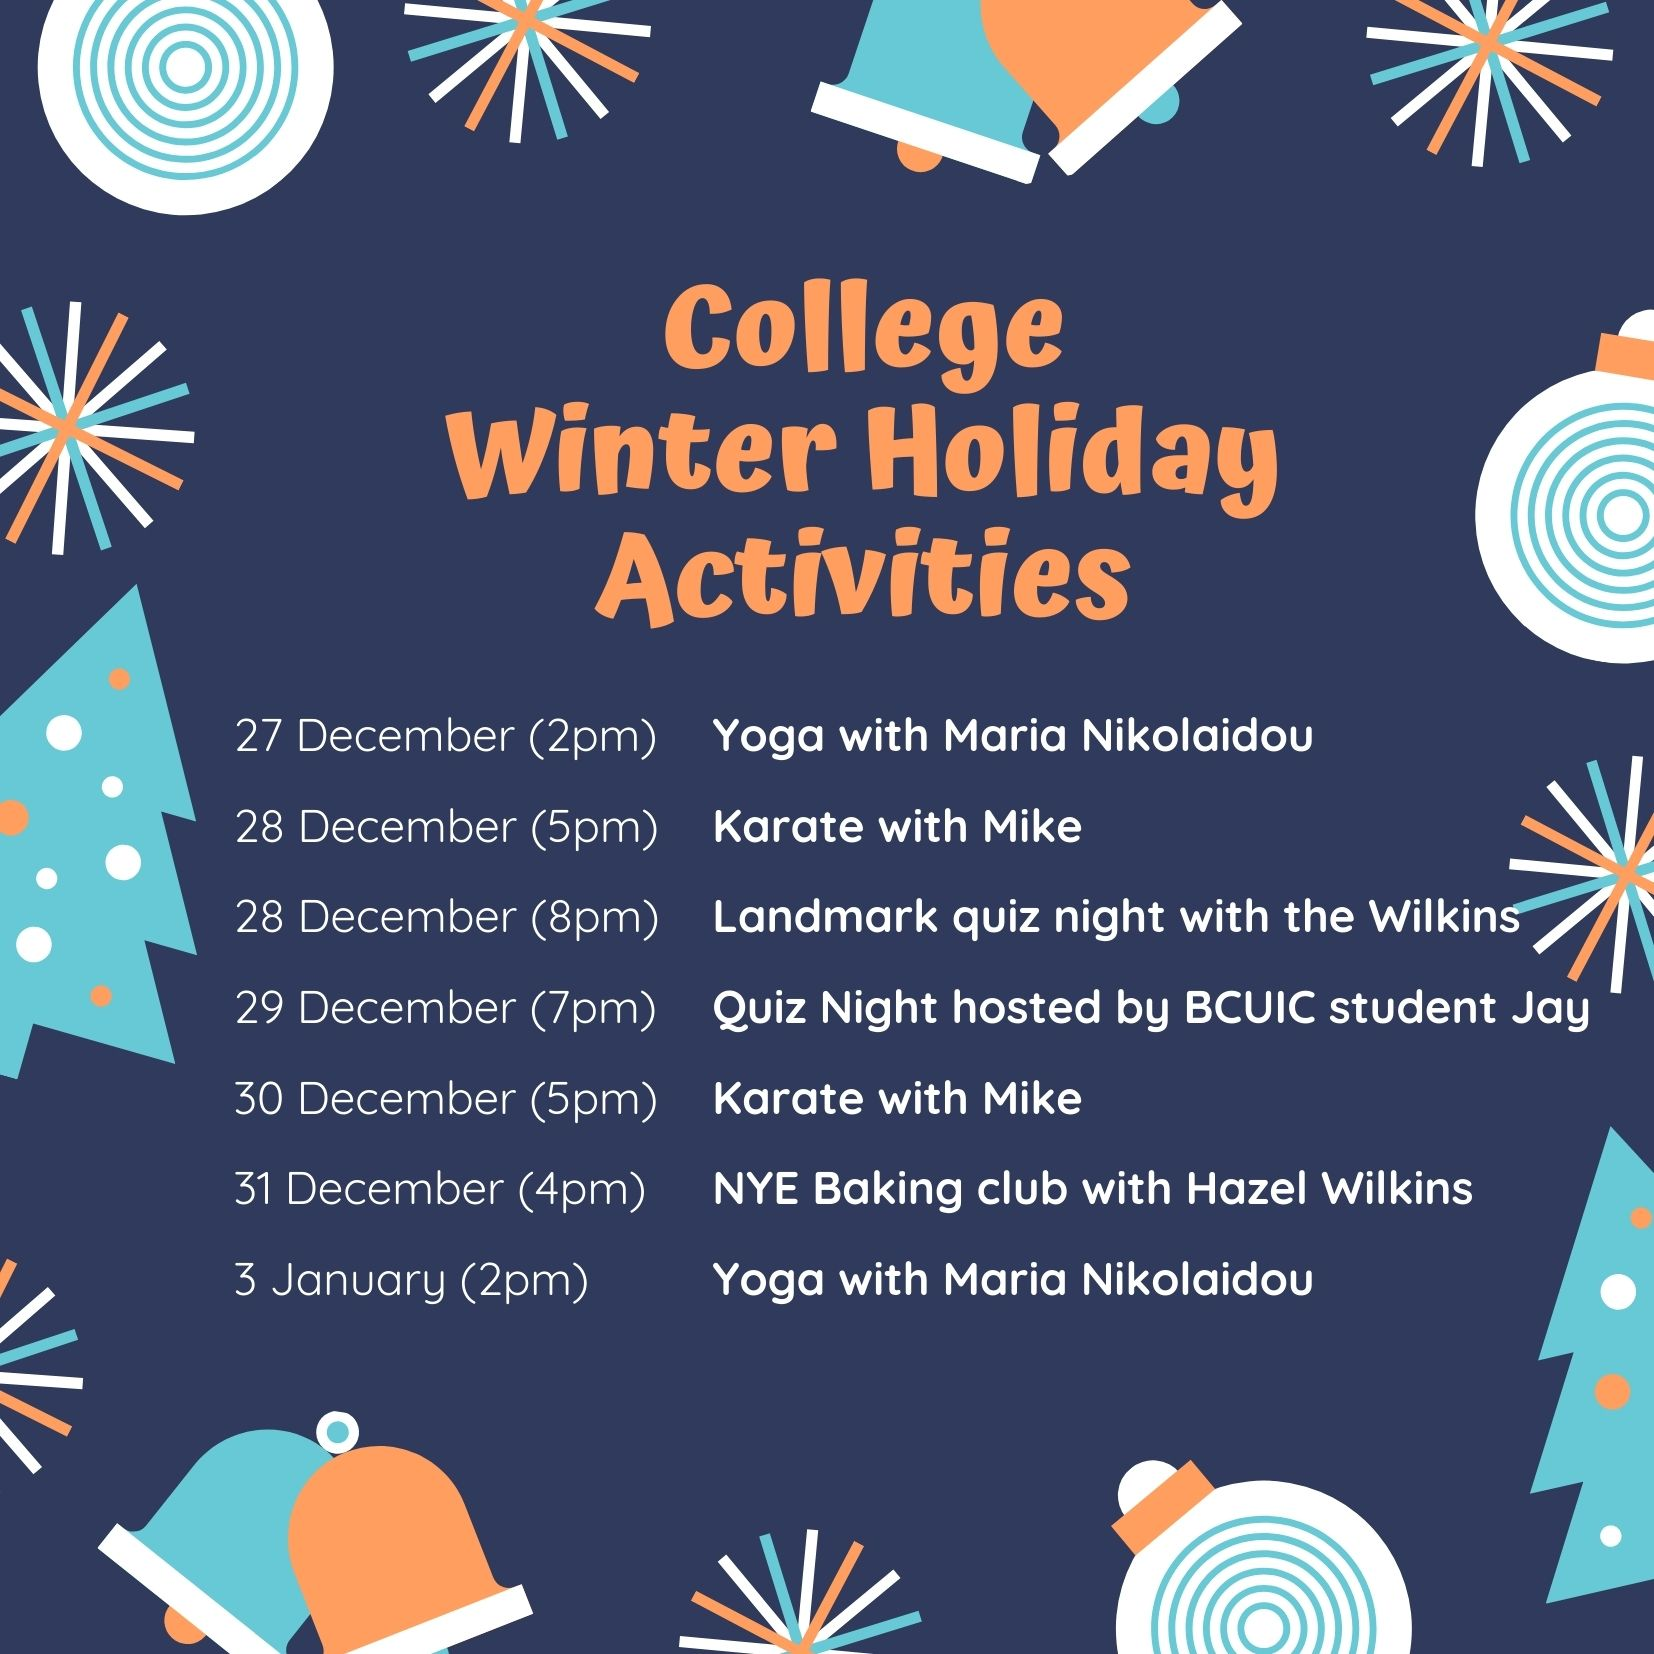 Winter Holiday Activities 2020